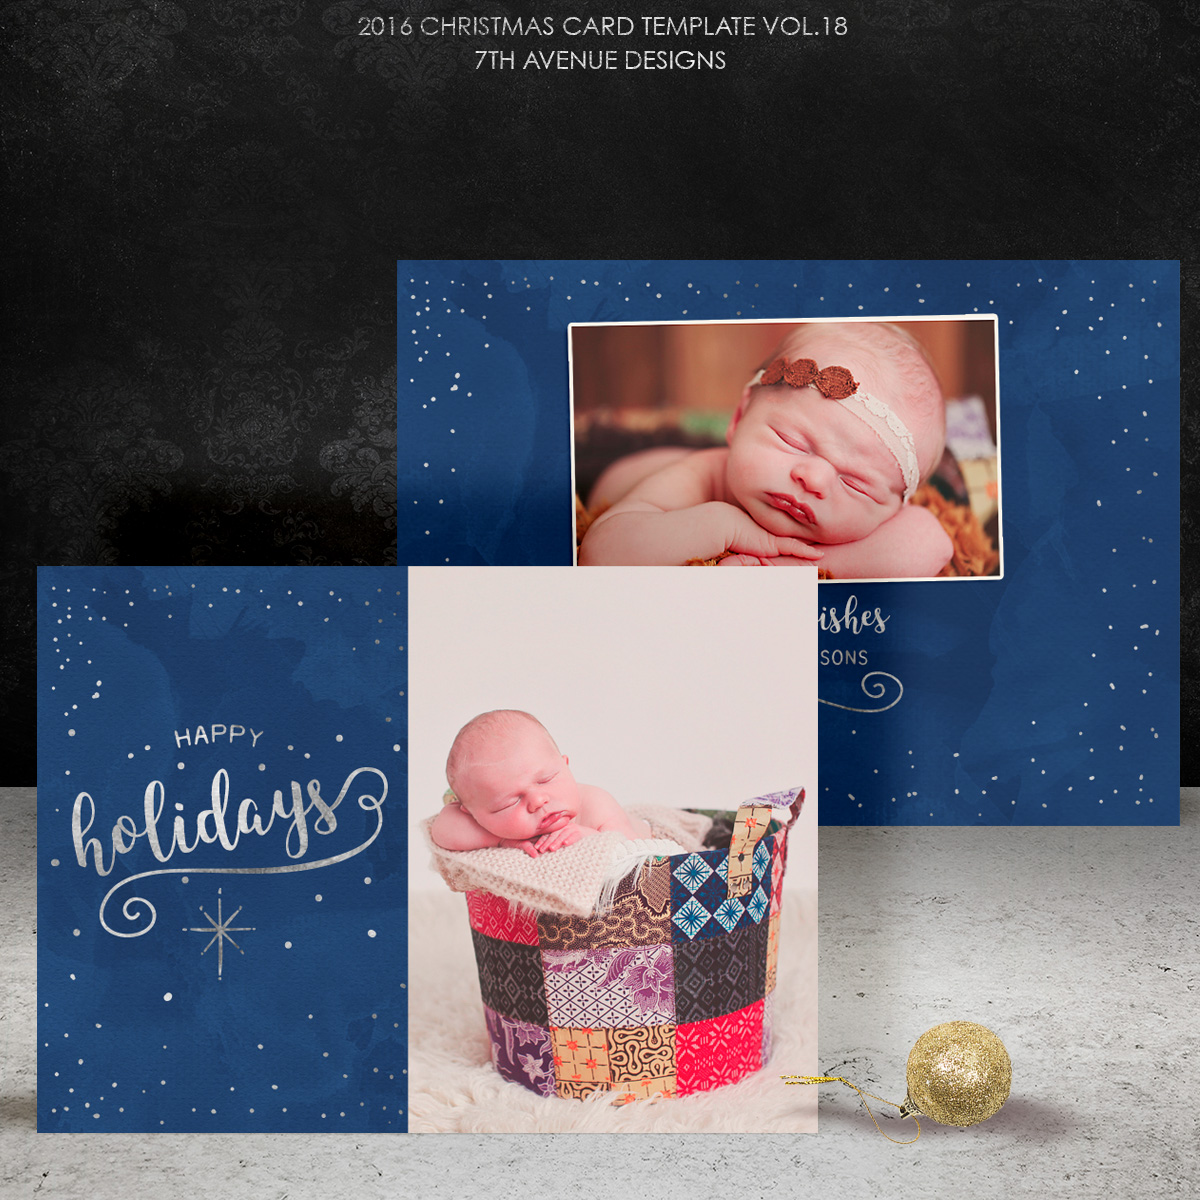 2016 Christmas Card Templates vol.18 -- 7x5 inch card template